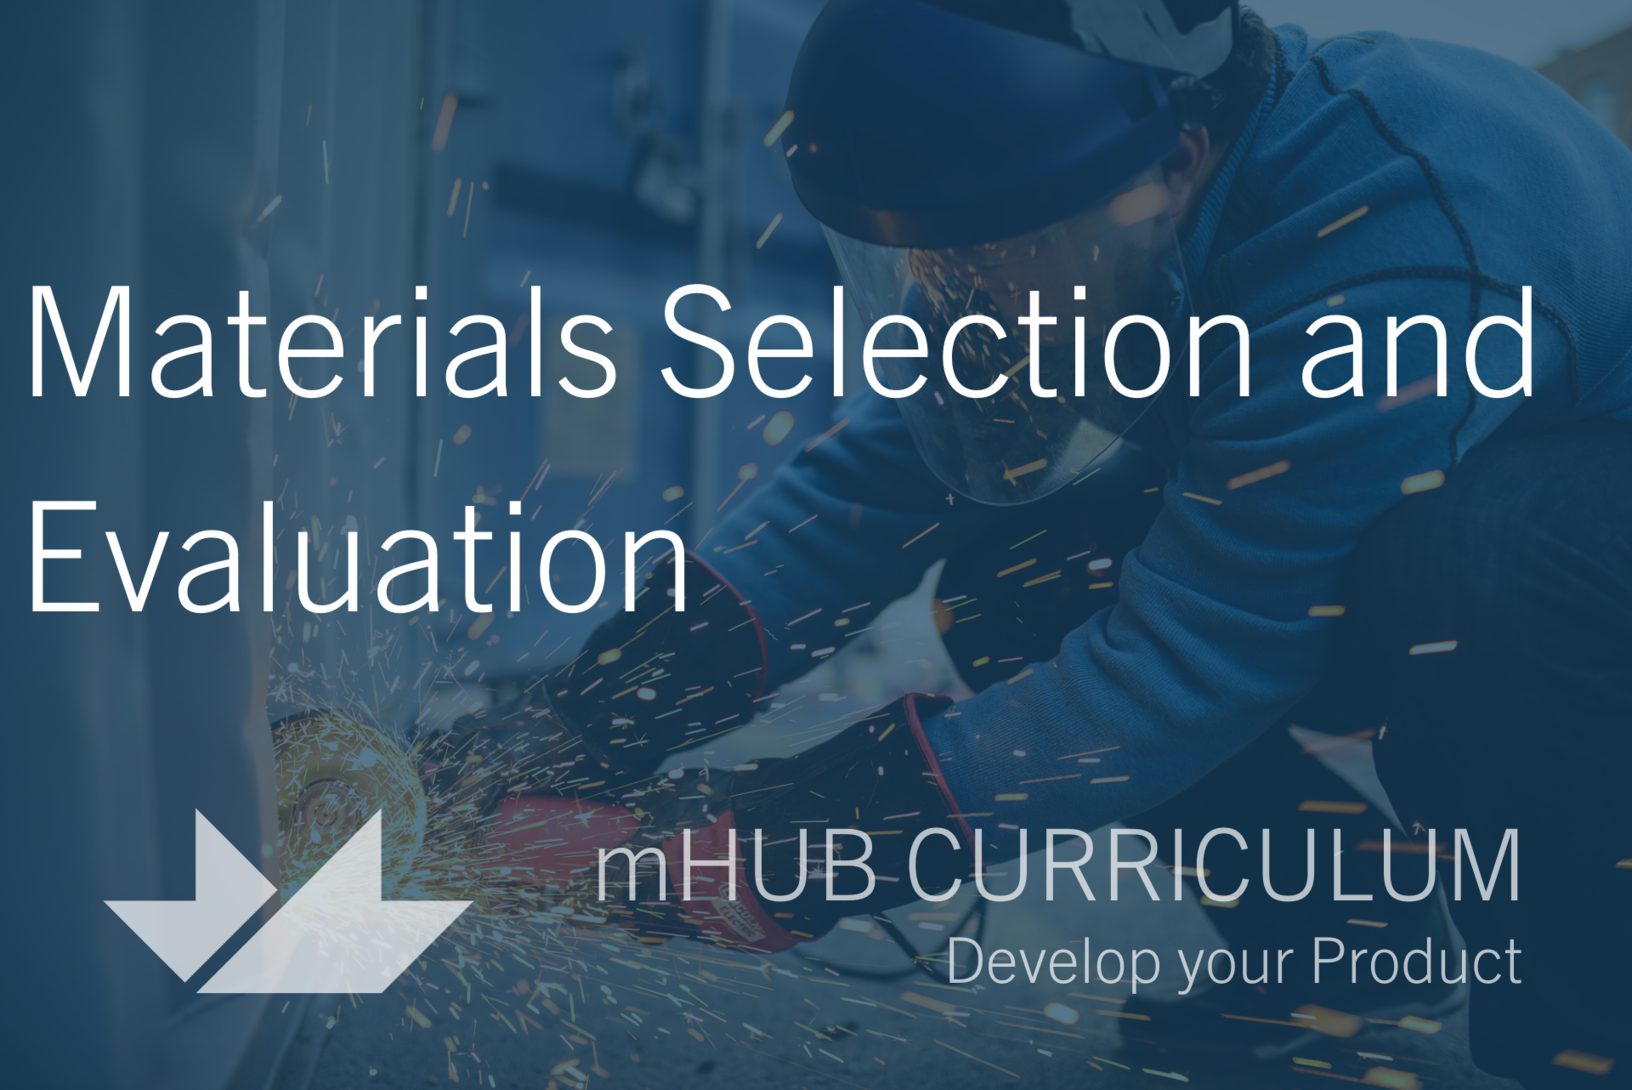 Materials Selection and Evaluation